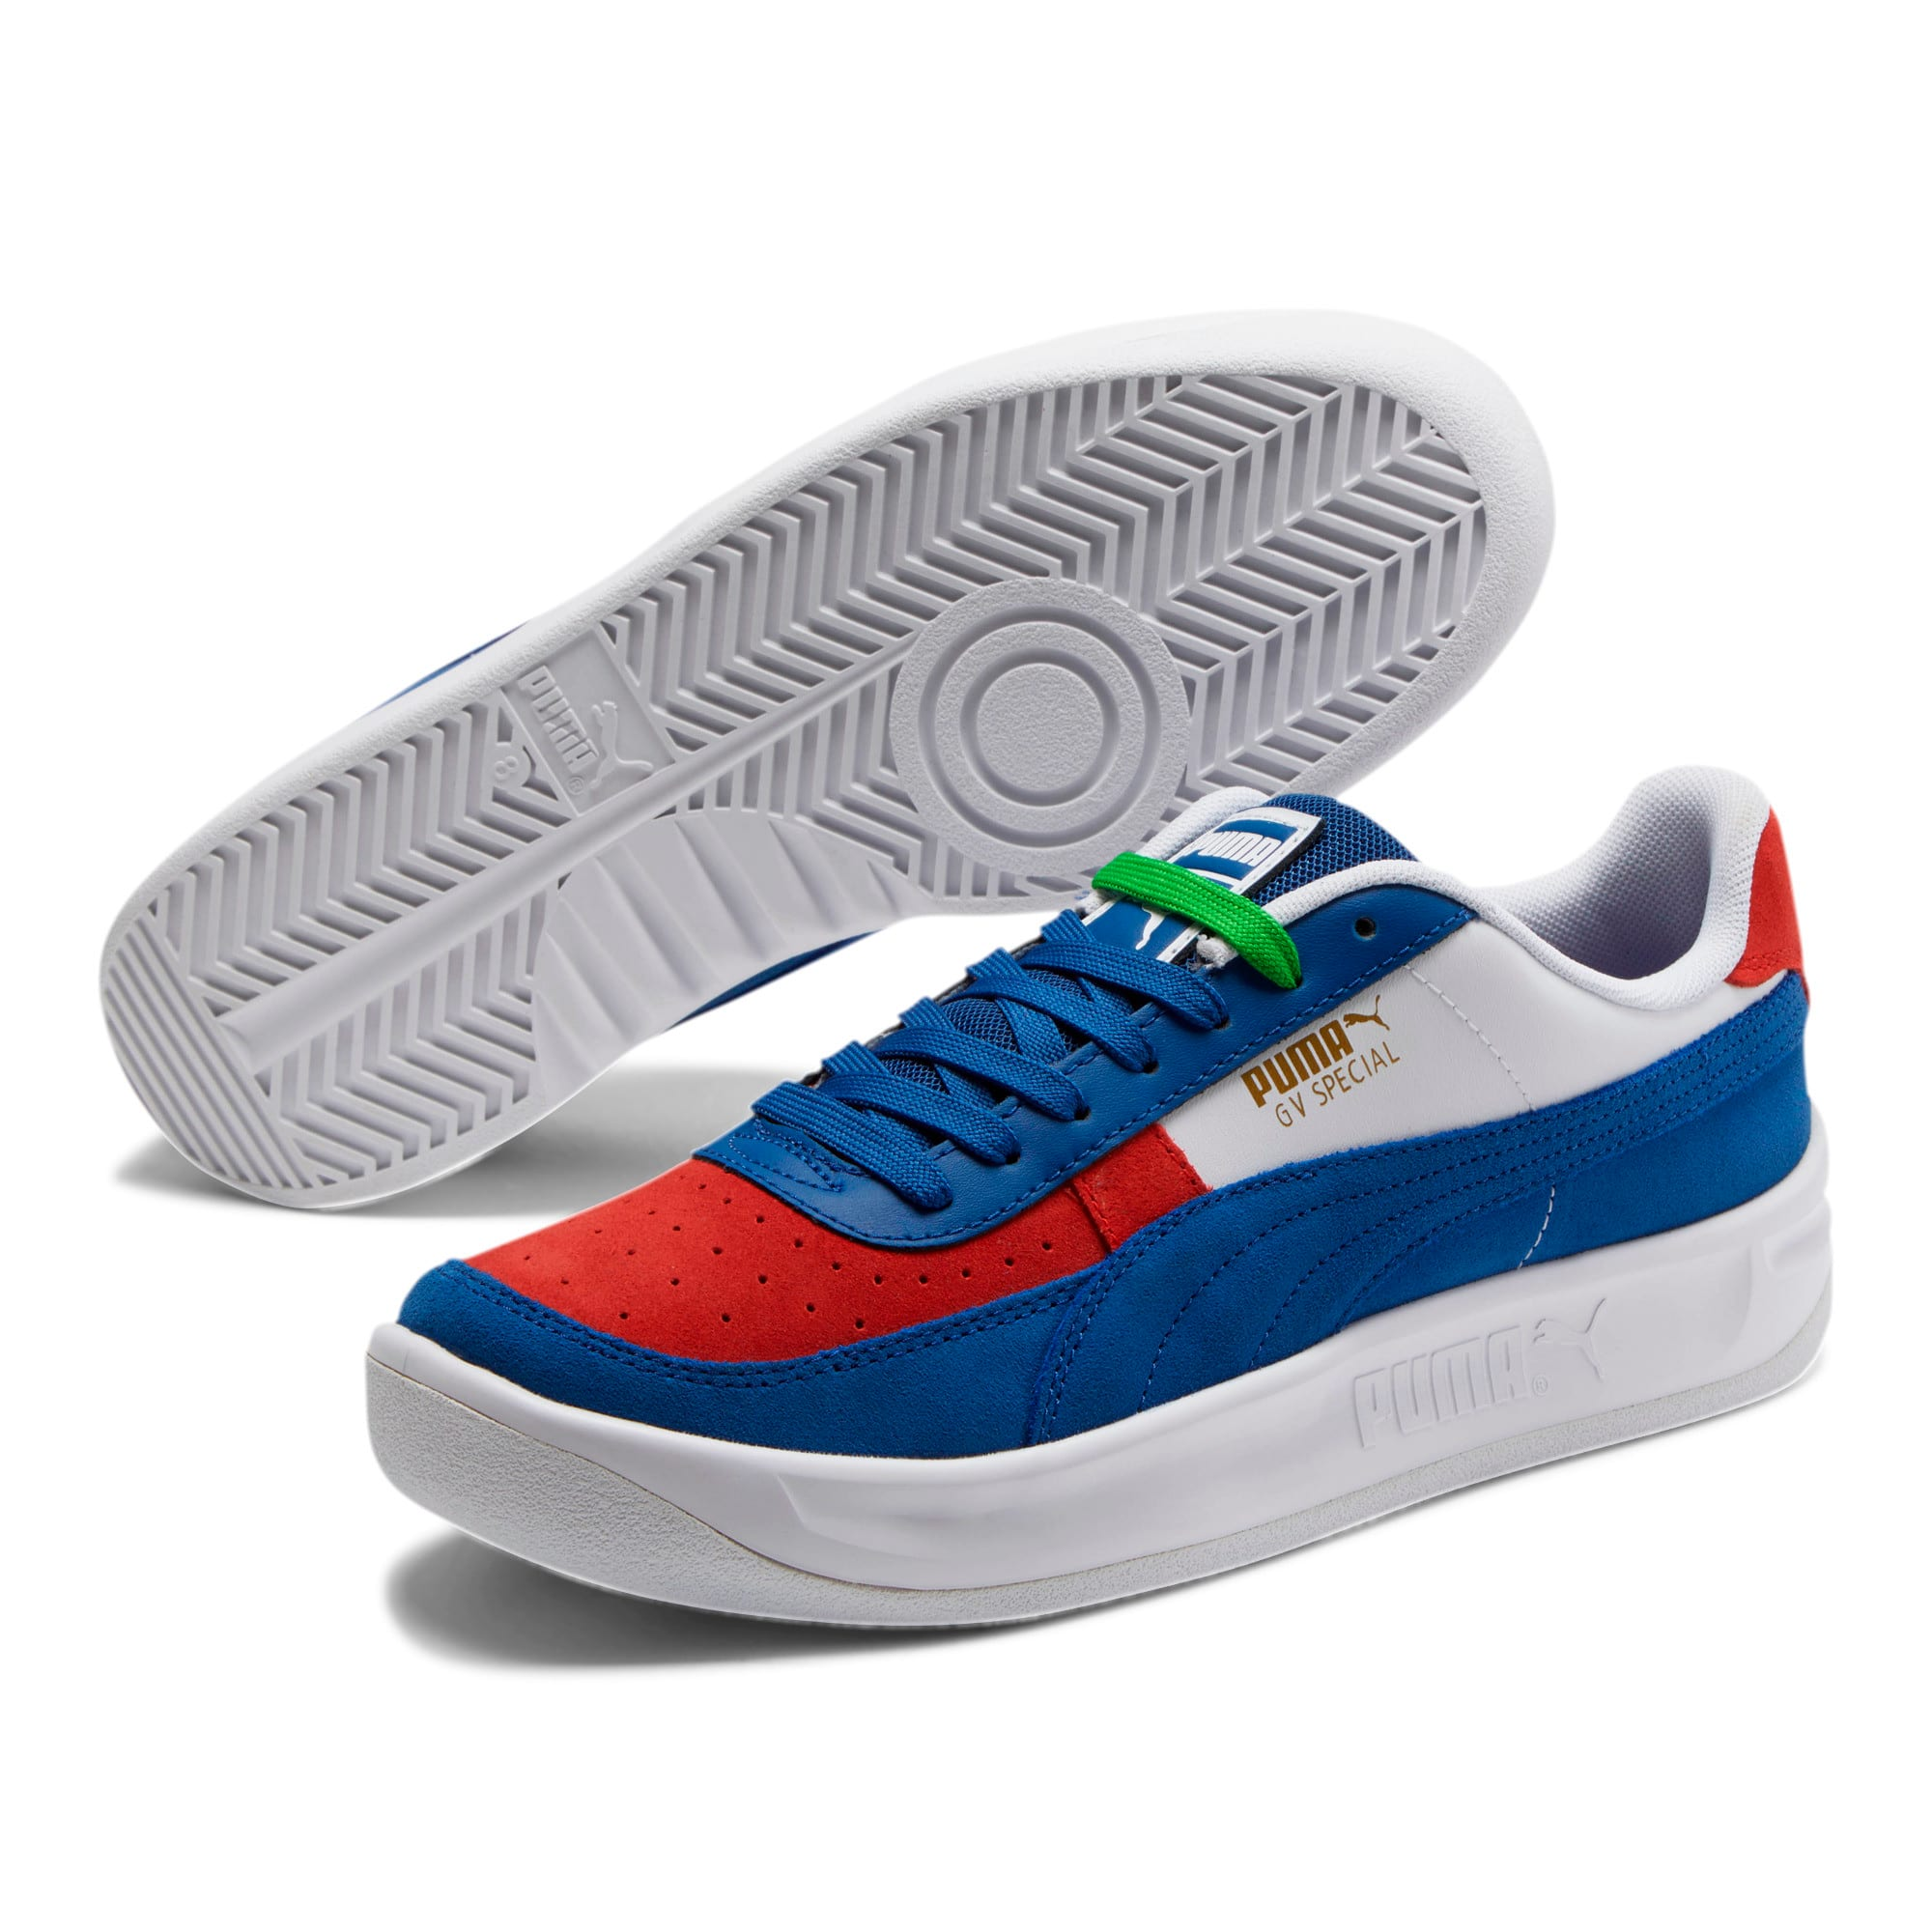 Thumbnail 2 of GV Special + Primary Sneakers, Gy Blue- White-High Risk Red, medium